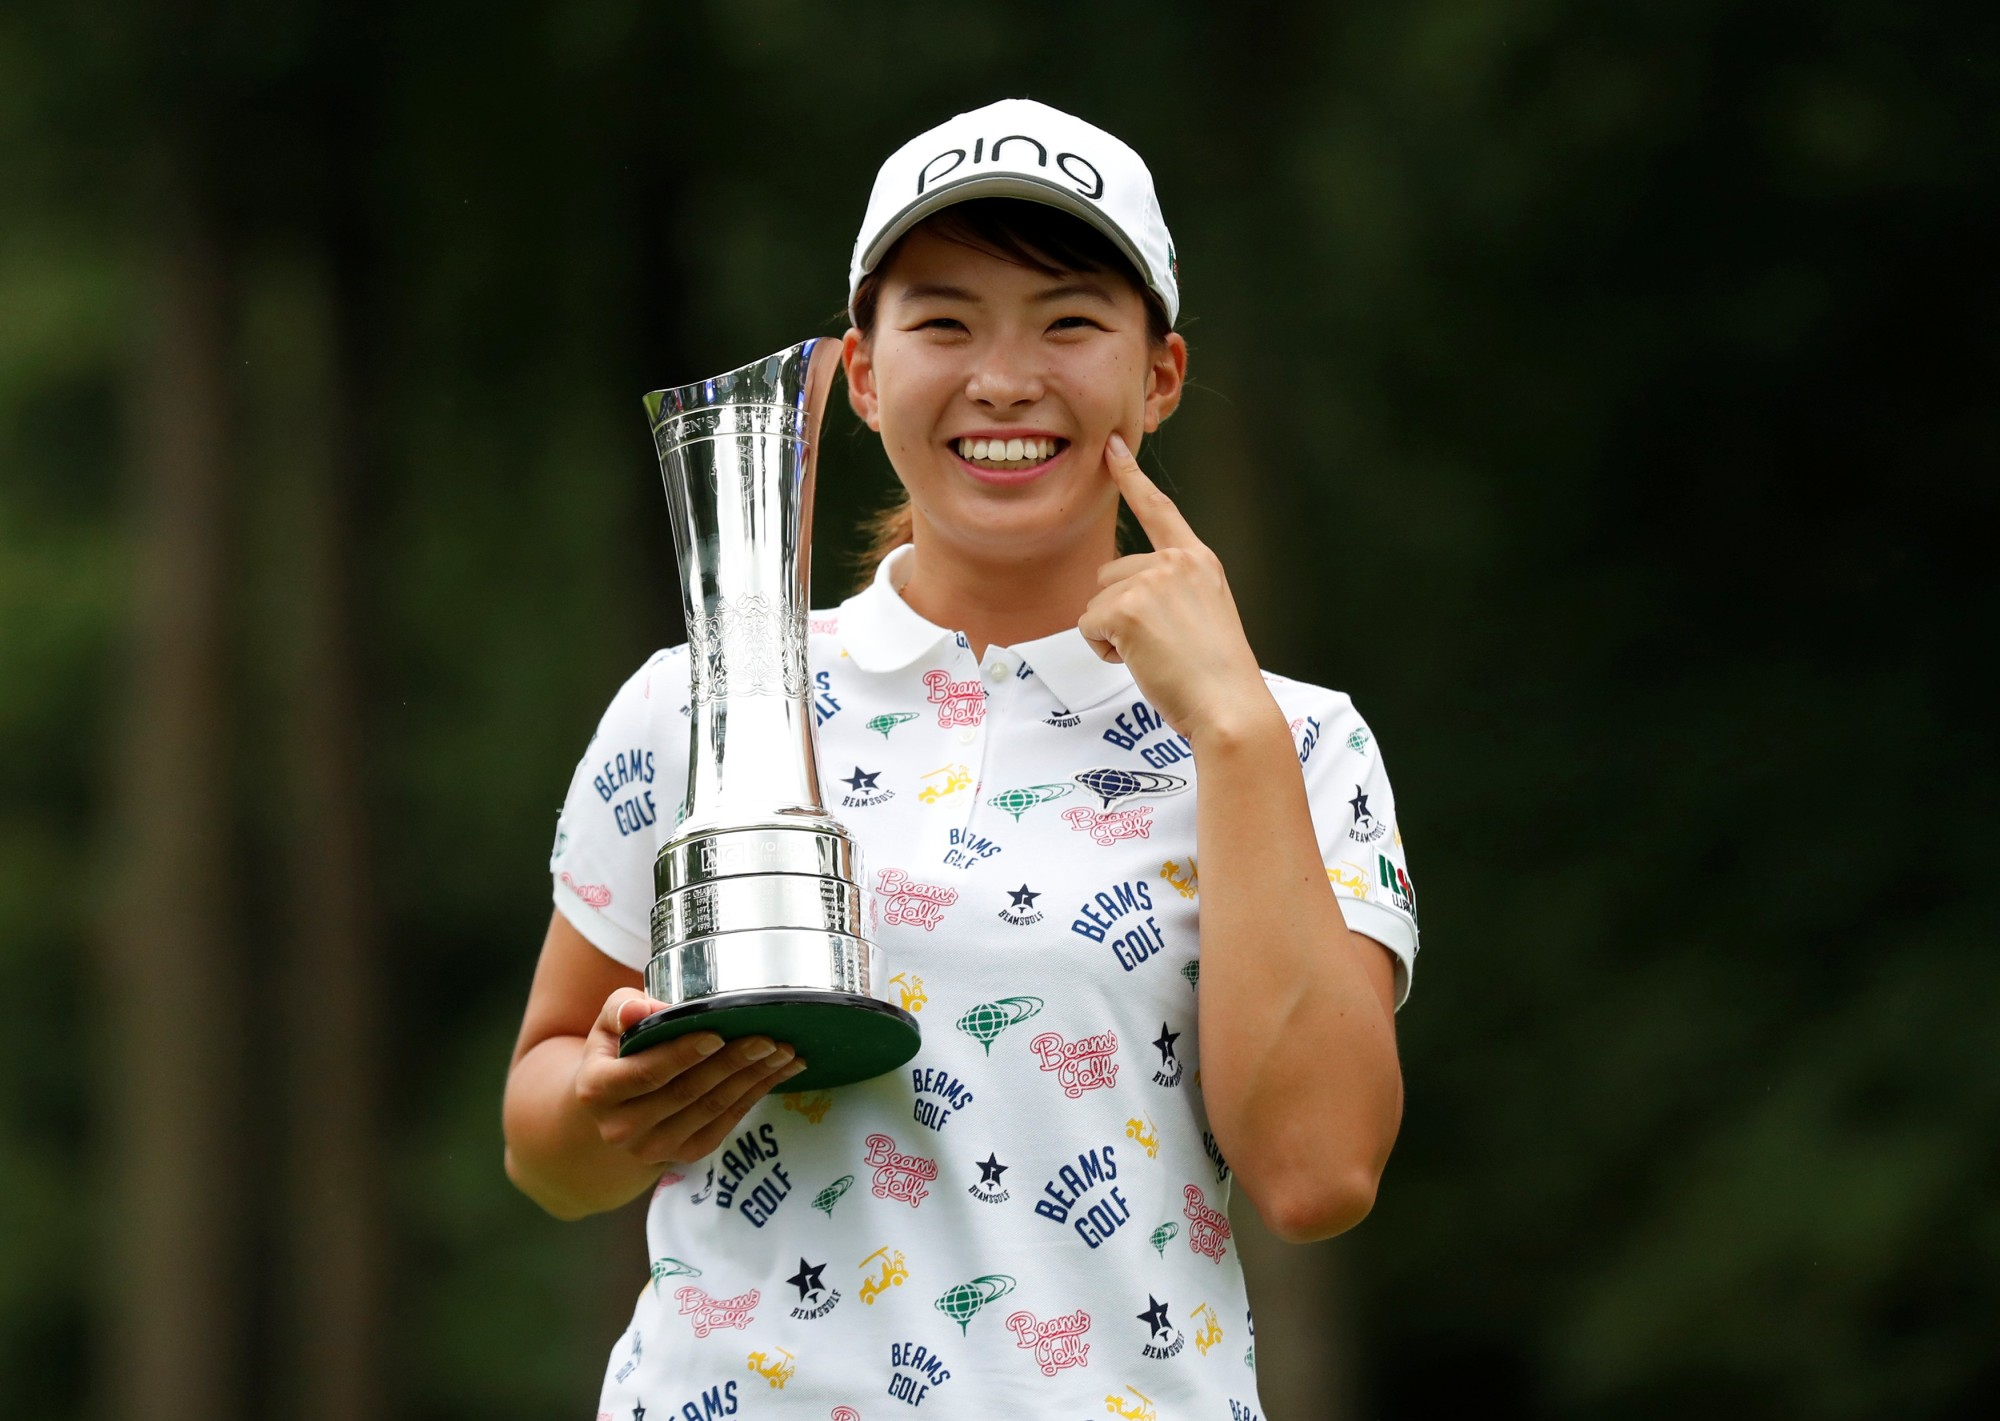 Hinako Shibuno holds the trophy as she poses for photos following her victory at the Women's British Open on Sunday in Milton Keynes, England.   ACTION IMAGES VIA REUTERS